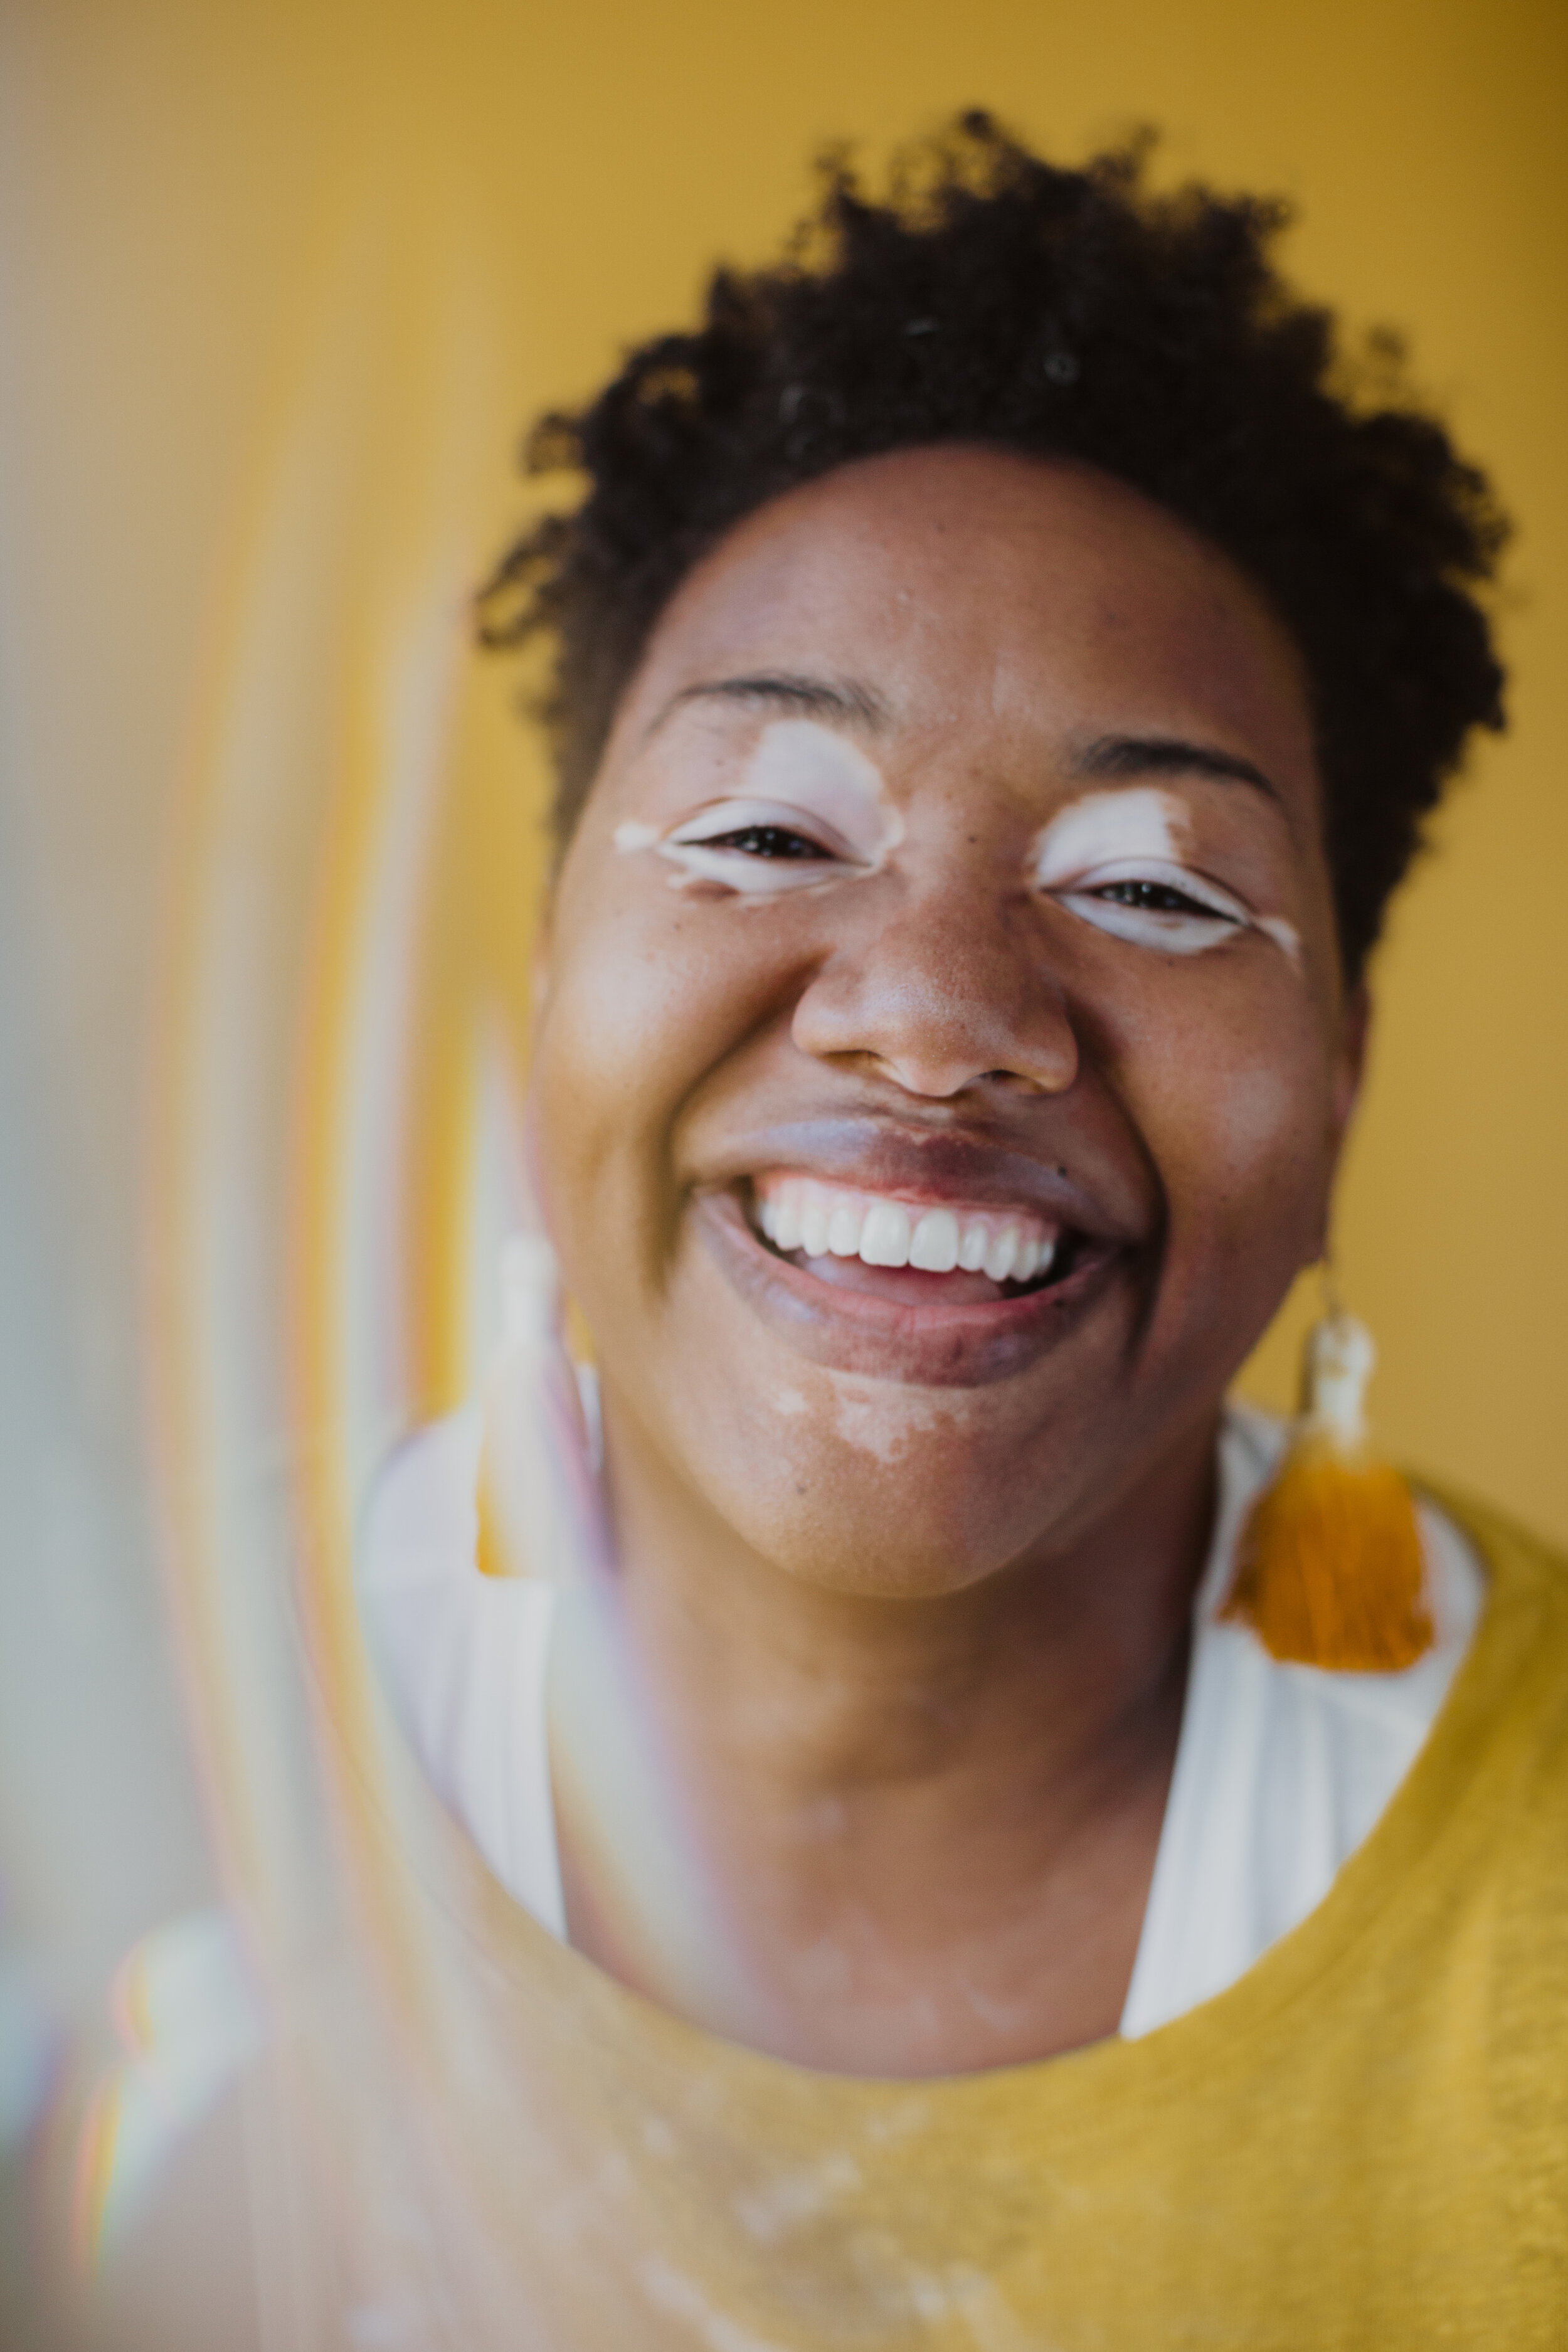 Stephanie is an Enneagram 7 - Stephanie is a guaranteed source of JOY in her circle. She brings the laughter, light and optimism to any situation. Her smile is radiant and joy is contagious to those around her.